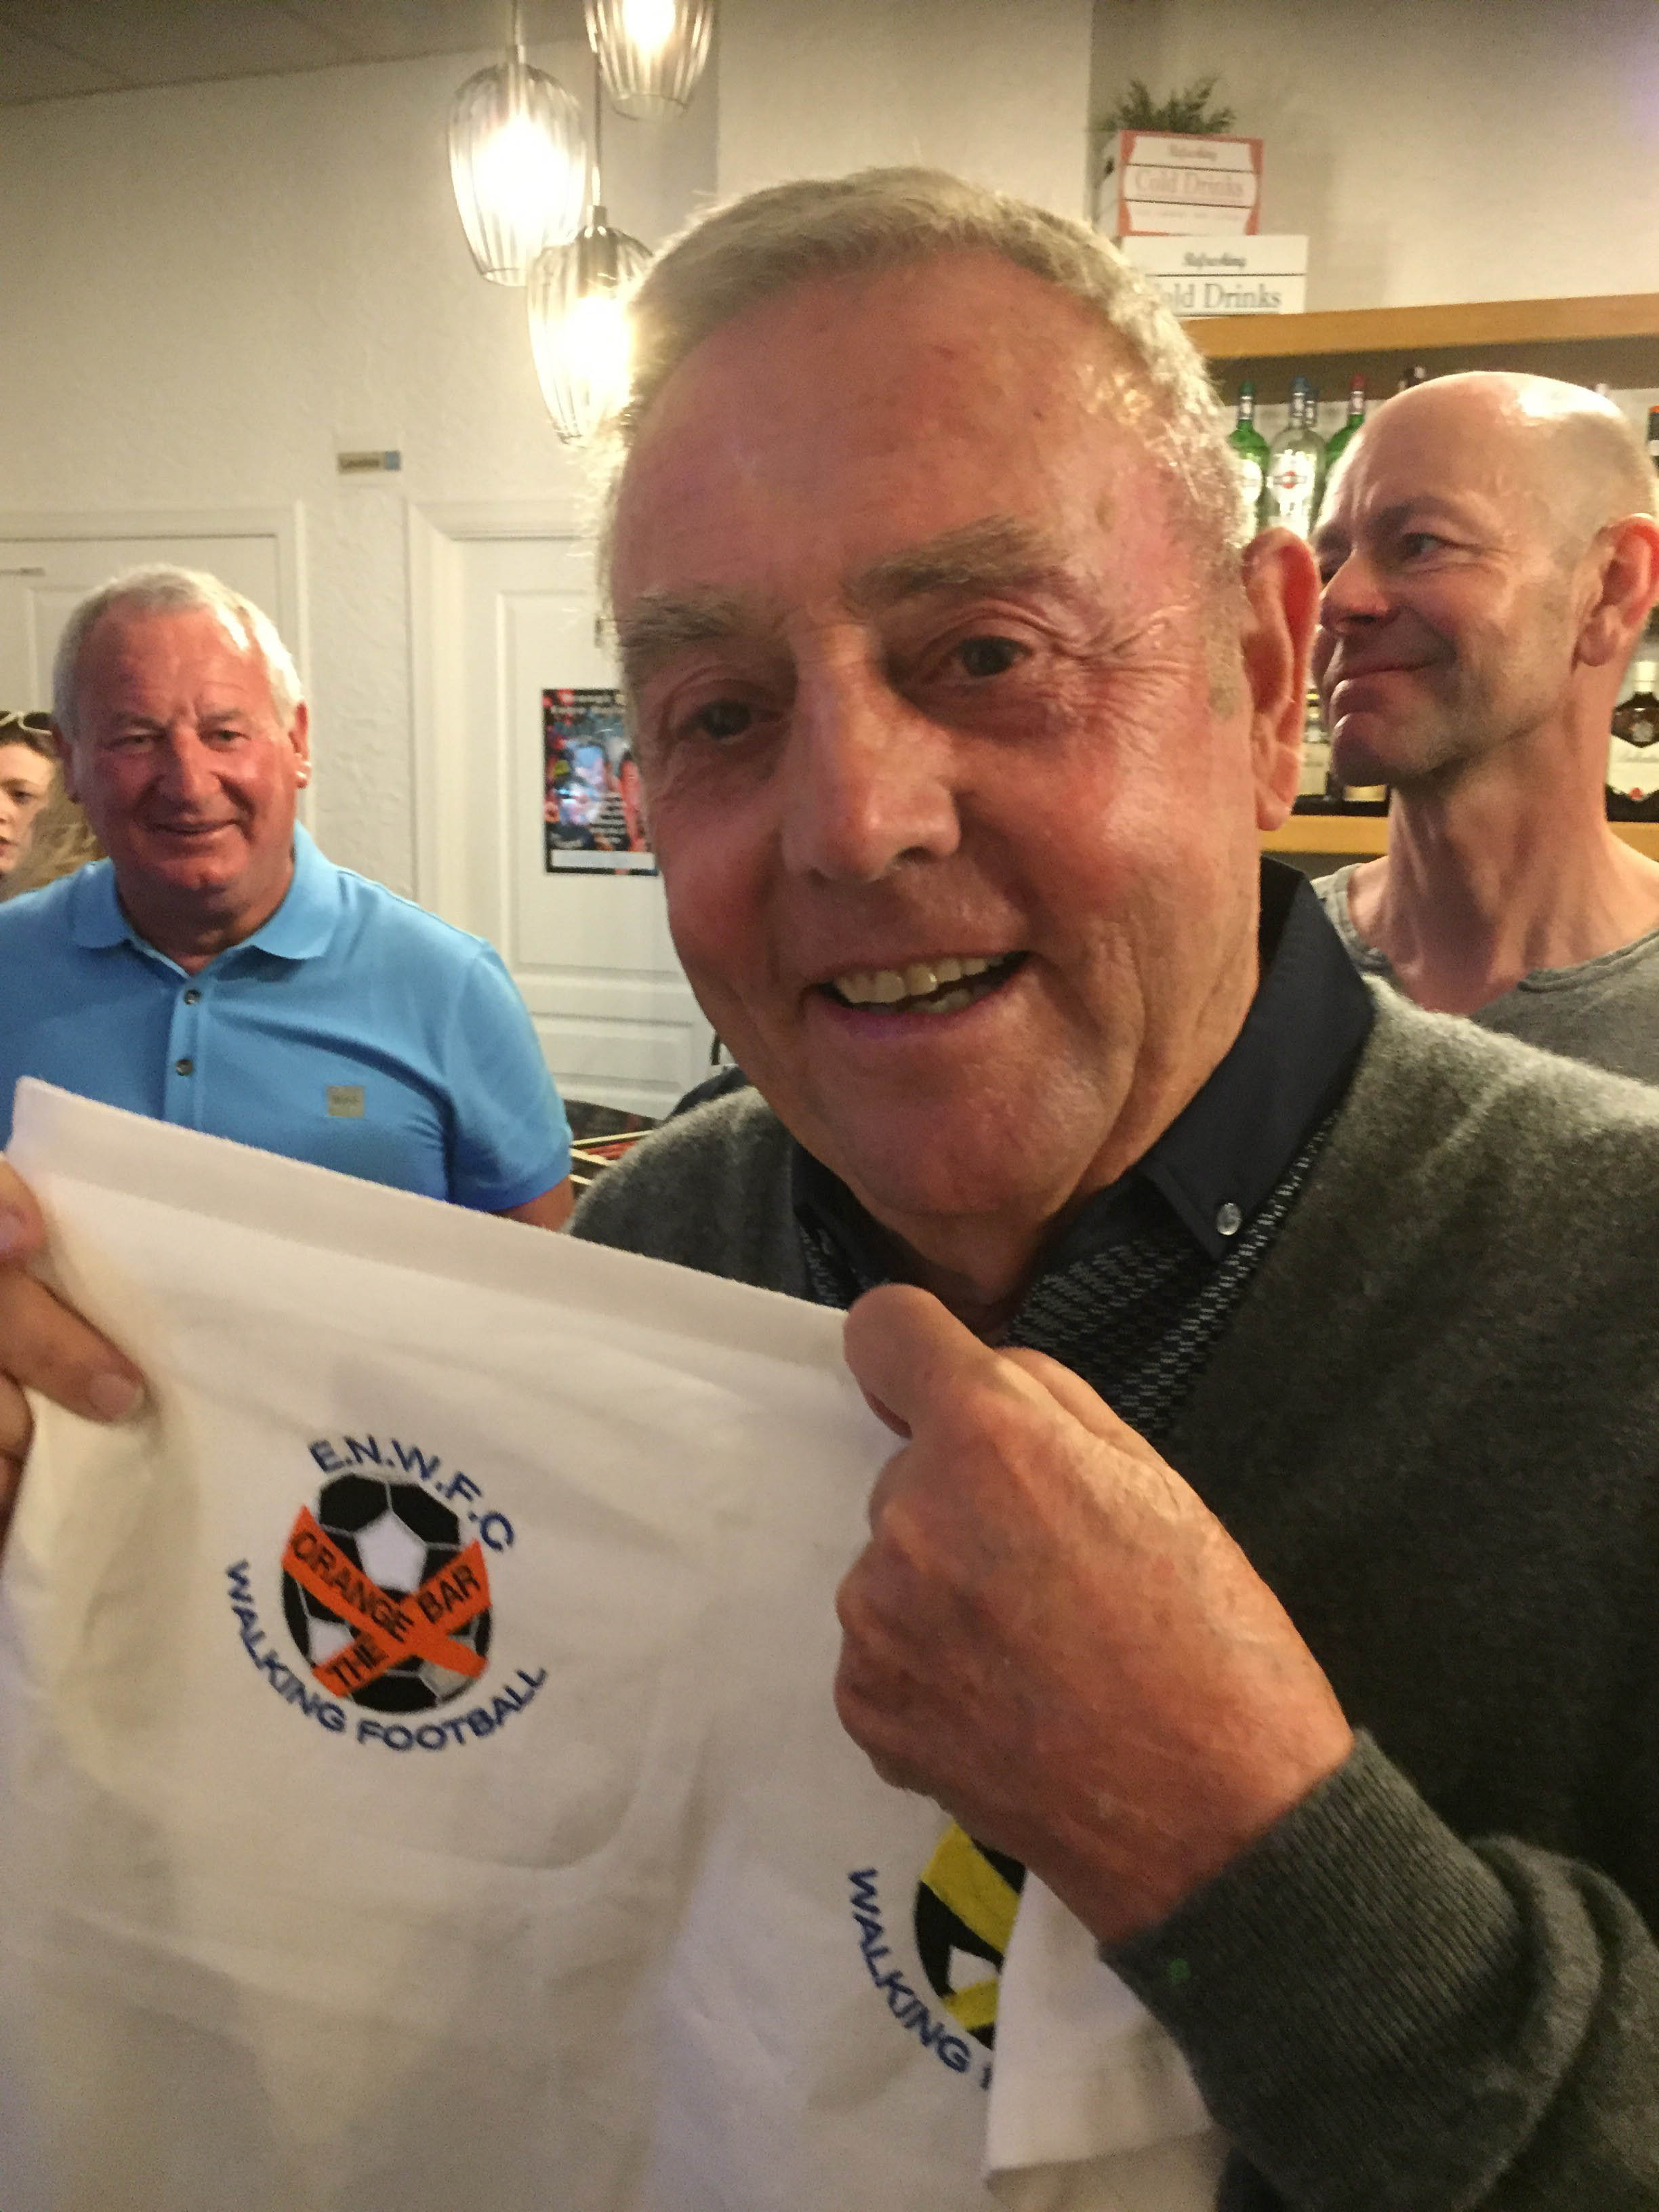 The Saint drops in to Walking Football launch in Entre Naranjos